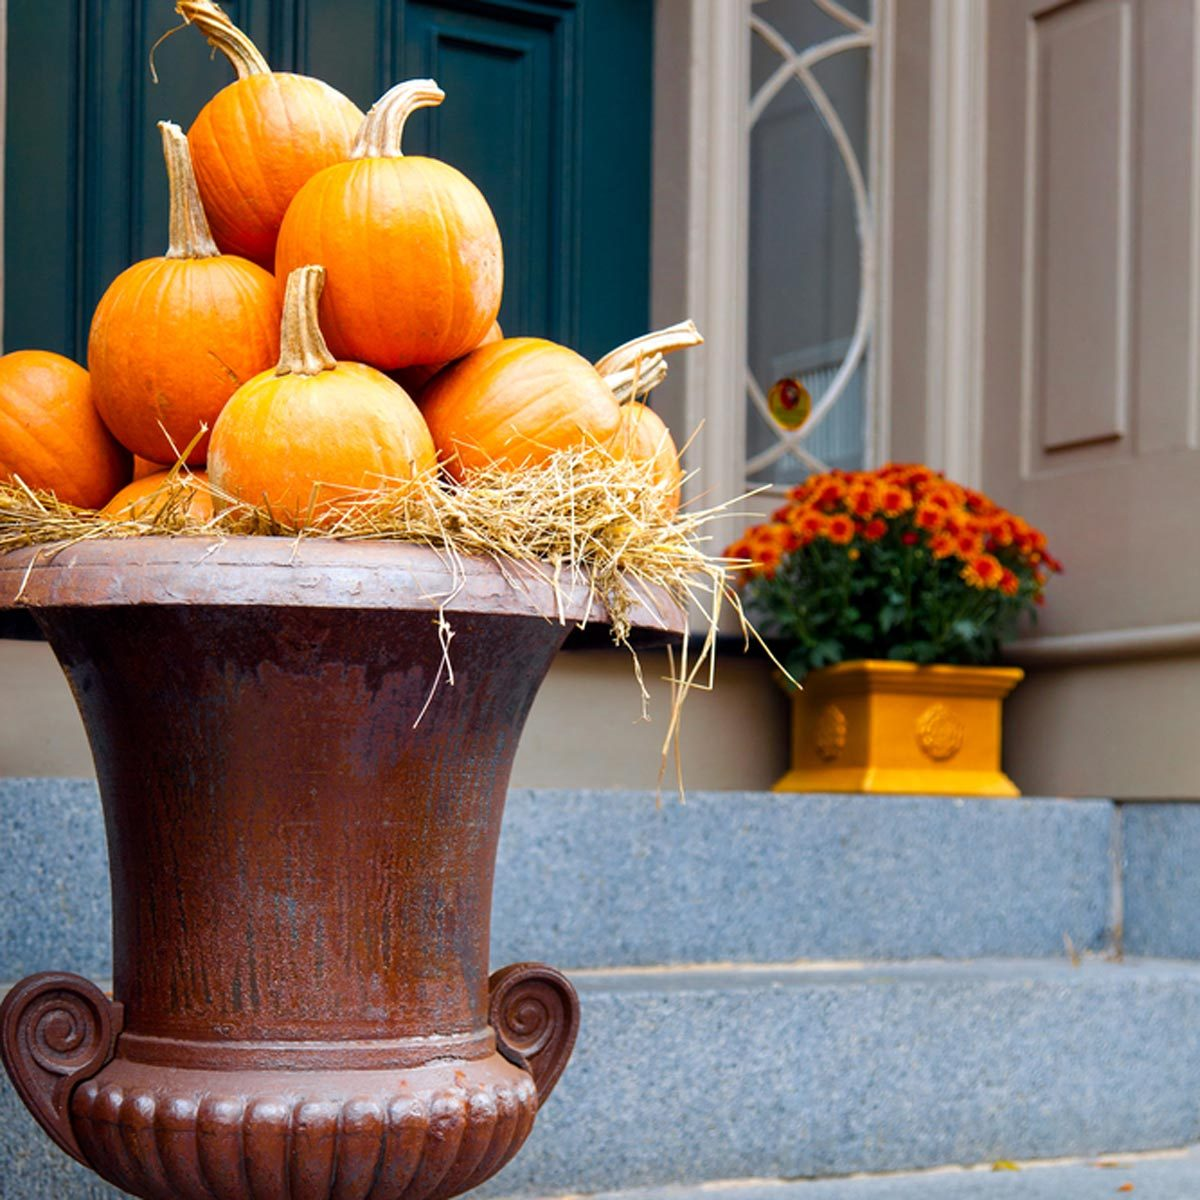 dfh17sep016_106467653 front porch urn planter fall pumpkins pot